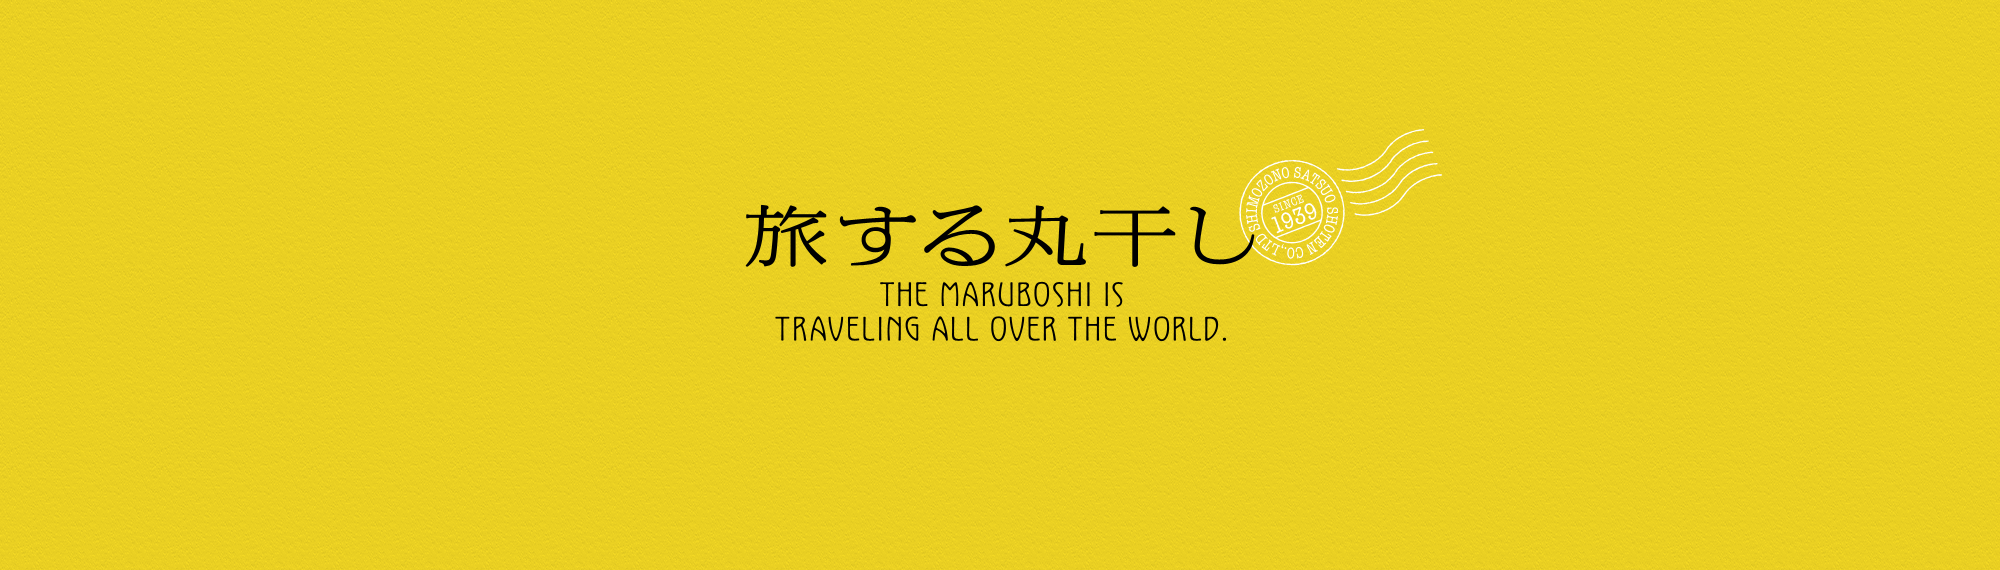 旅する丸干し THE MARUBOSHI IS TRAVELING ALL OVER THE WORLD.